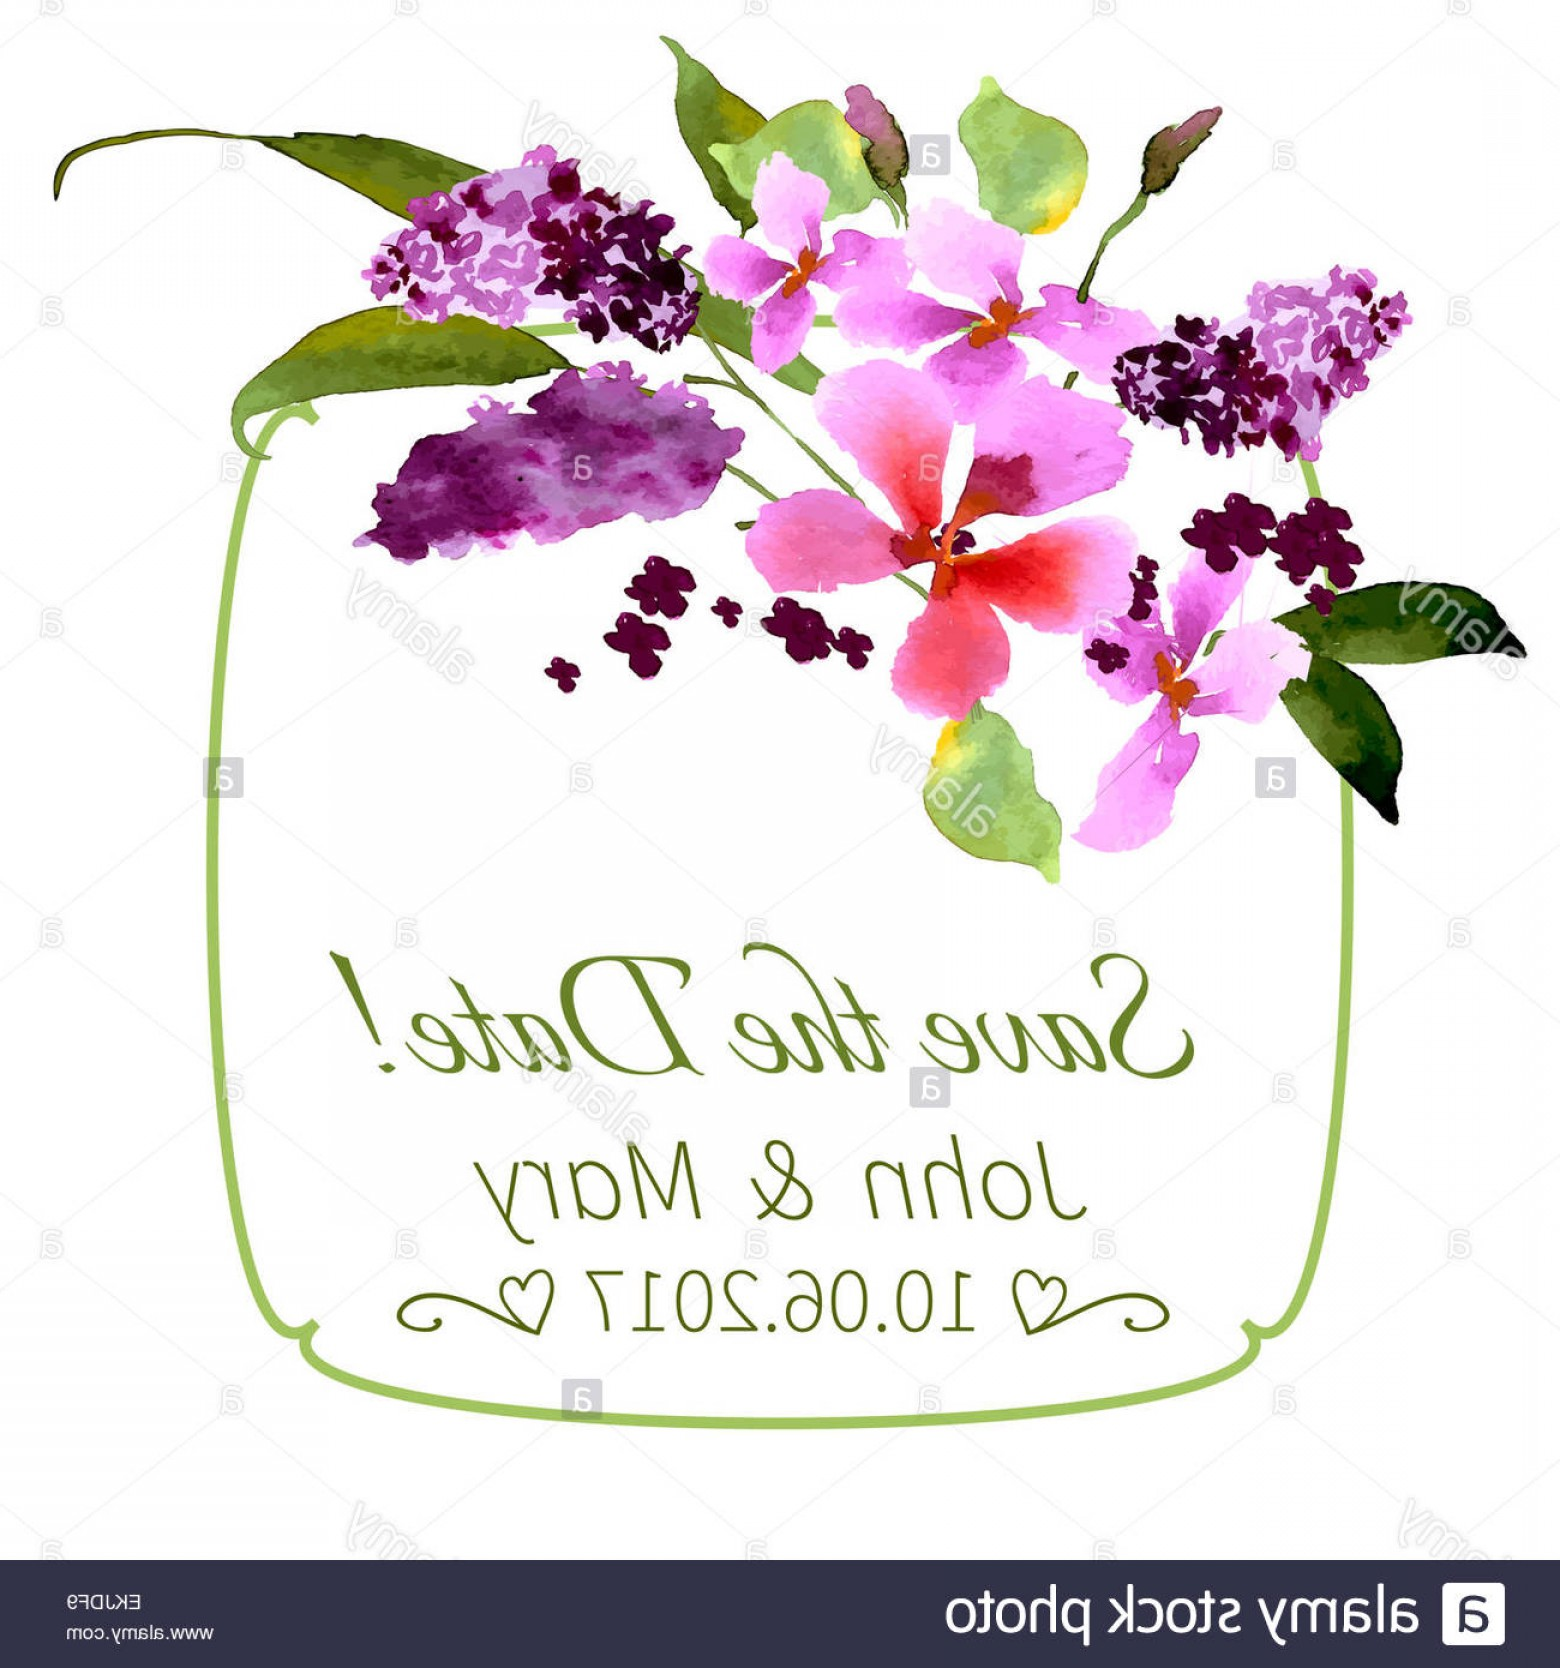 Watercolor Floral Background Vector: Stock Photo Lilac Flowers Watercolor Floral Illustration Floral Bouquet Vector